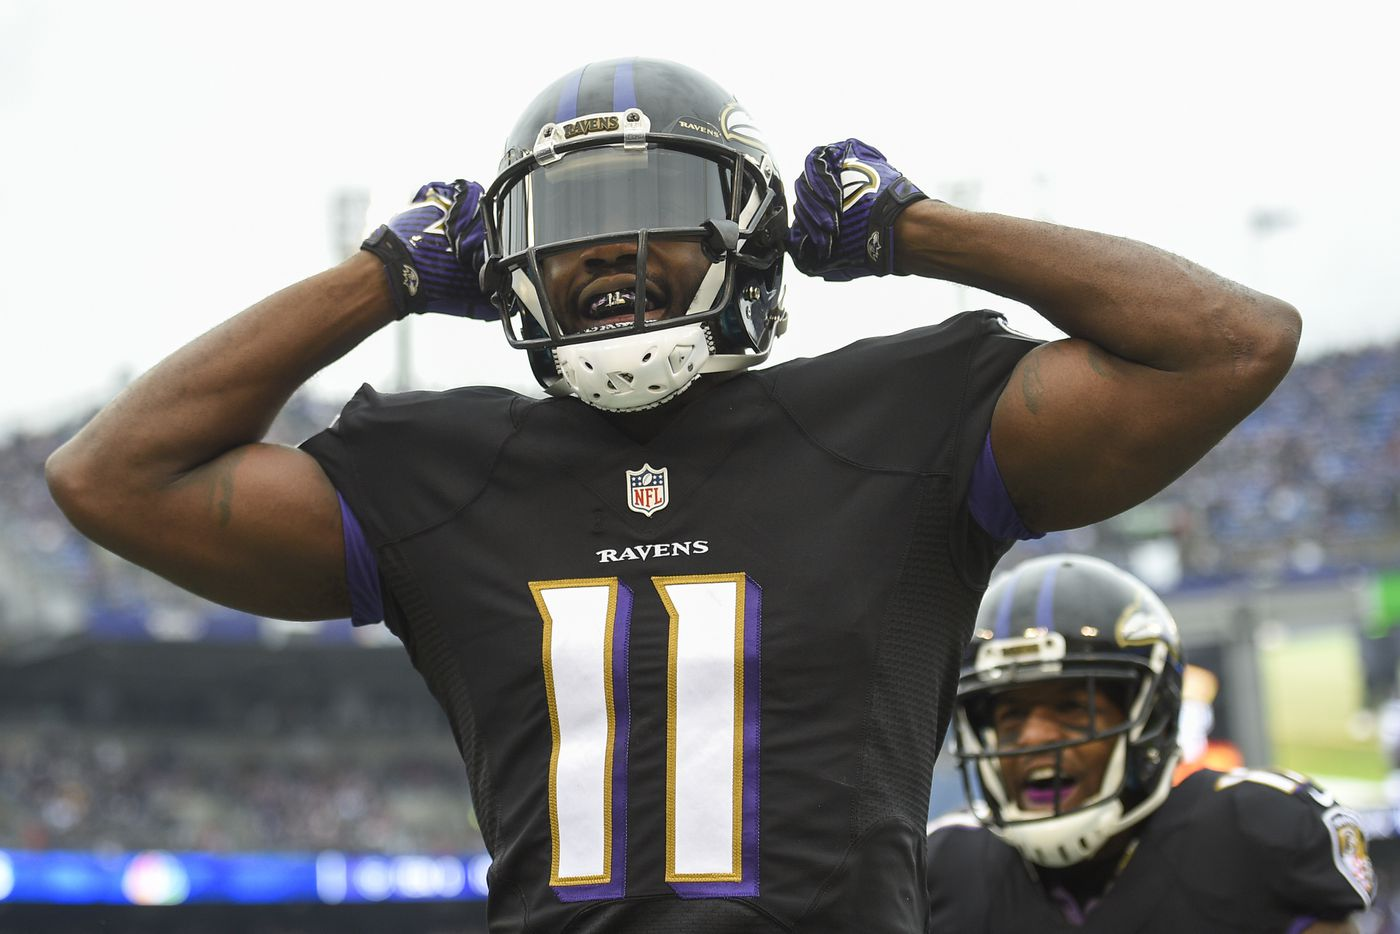 Kamar Aiken, now with Eagles, hopes to prove he's not a one-hit wonder